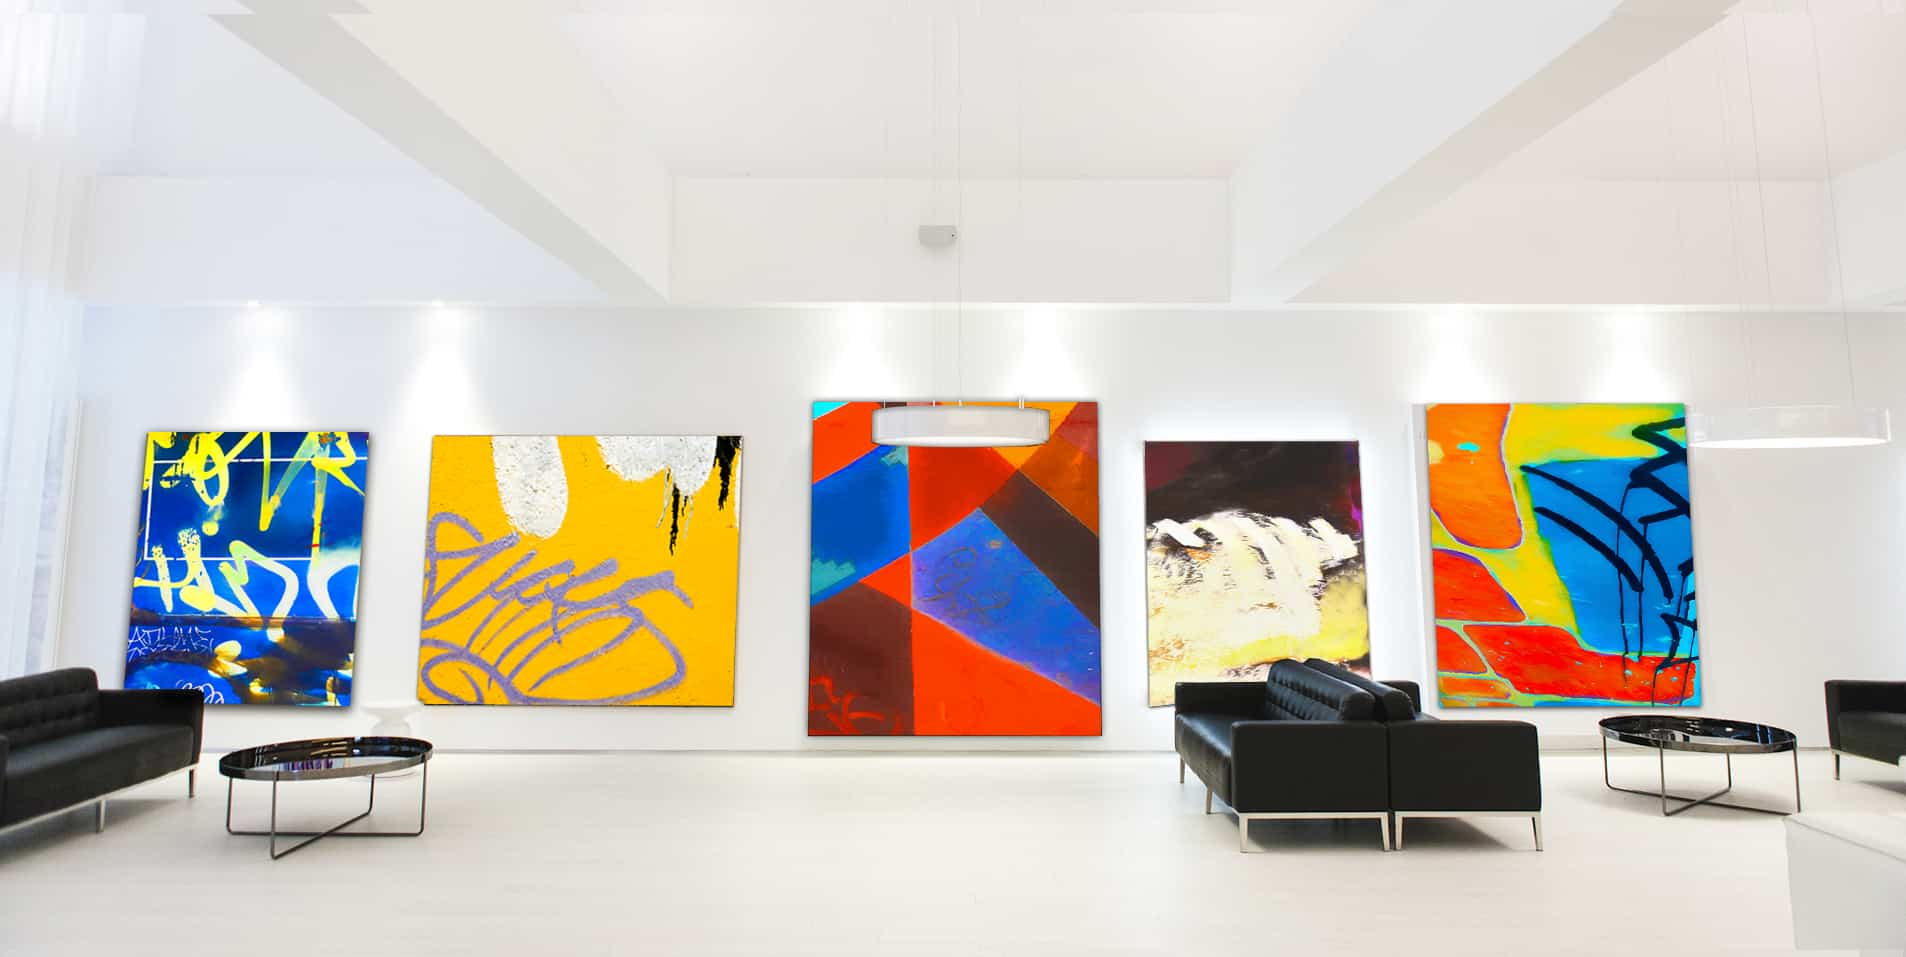 ABSTRACT ART GALLERY 1